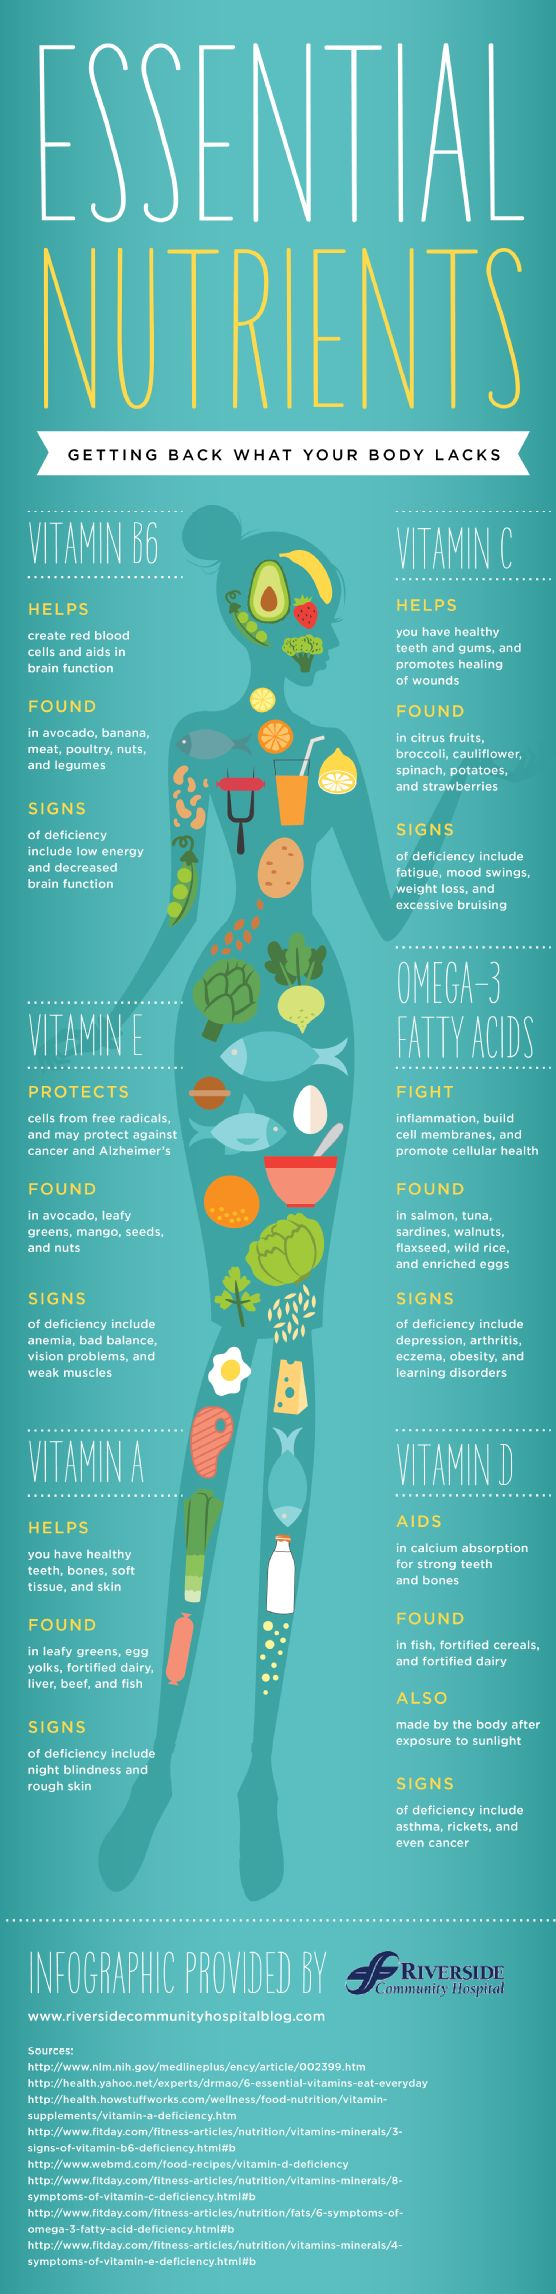 Common signs of vitamin D deficiency include asthma, rickets, and even cancer. Luckily, this vitamin can be found in fish, fortified cereals, and fortified dairy. Discover other nutrients to include in your diet by reading through this infographic from a heart hospital in Riverside.